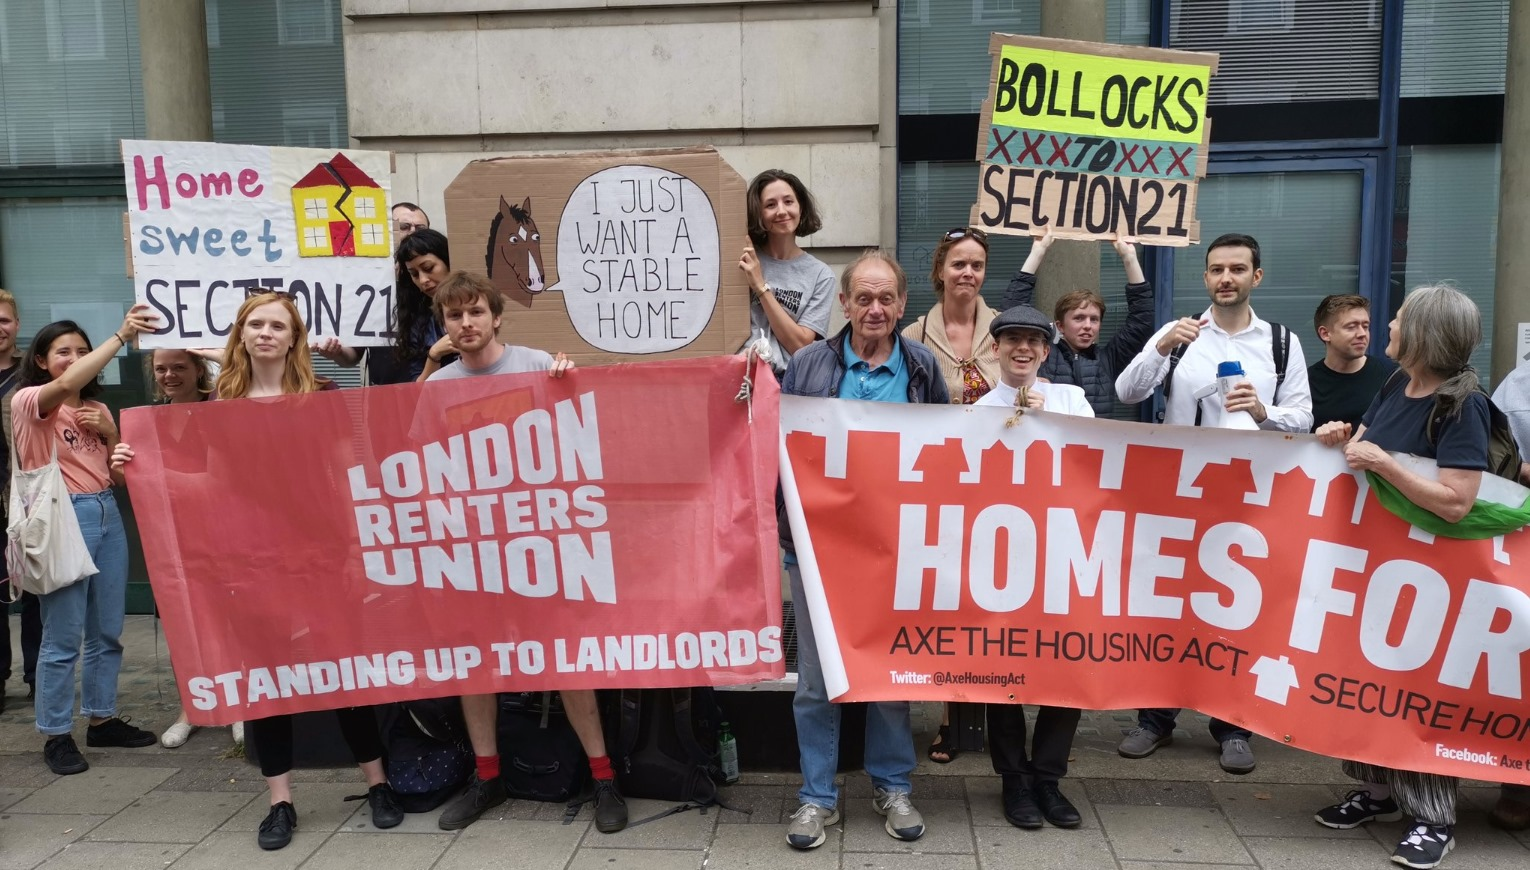 Organising for the right to housing in London